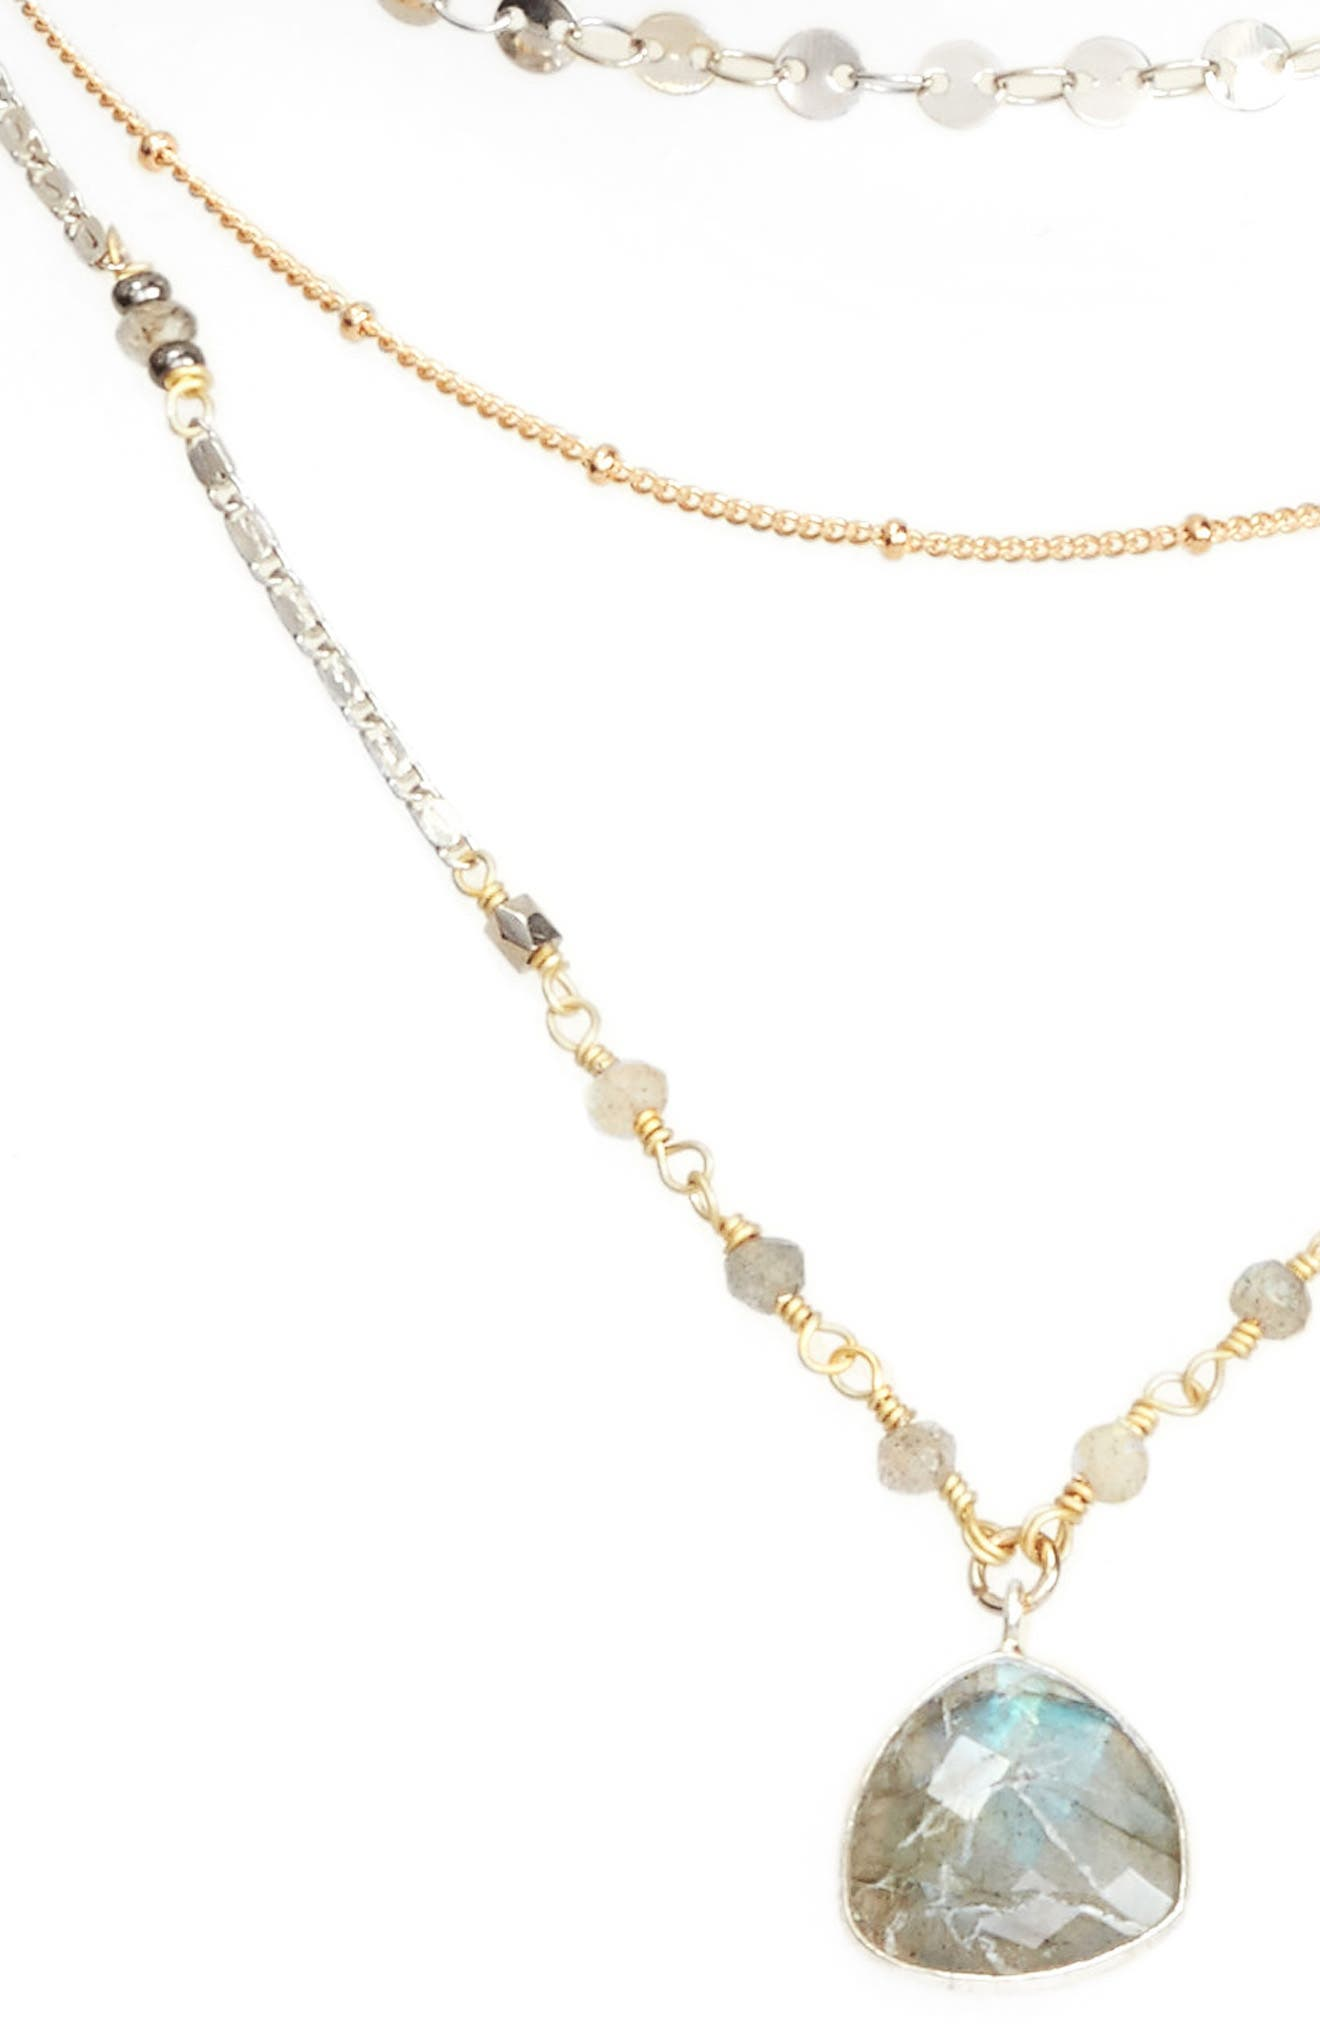 Multistrand Necklace,                             Main thumbnail 1, color,                             020